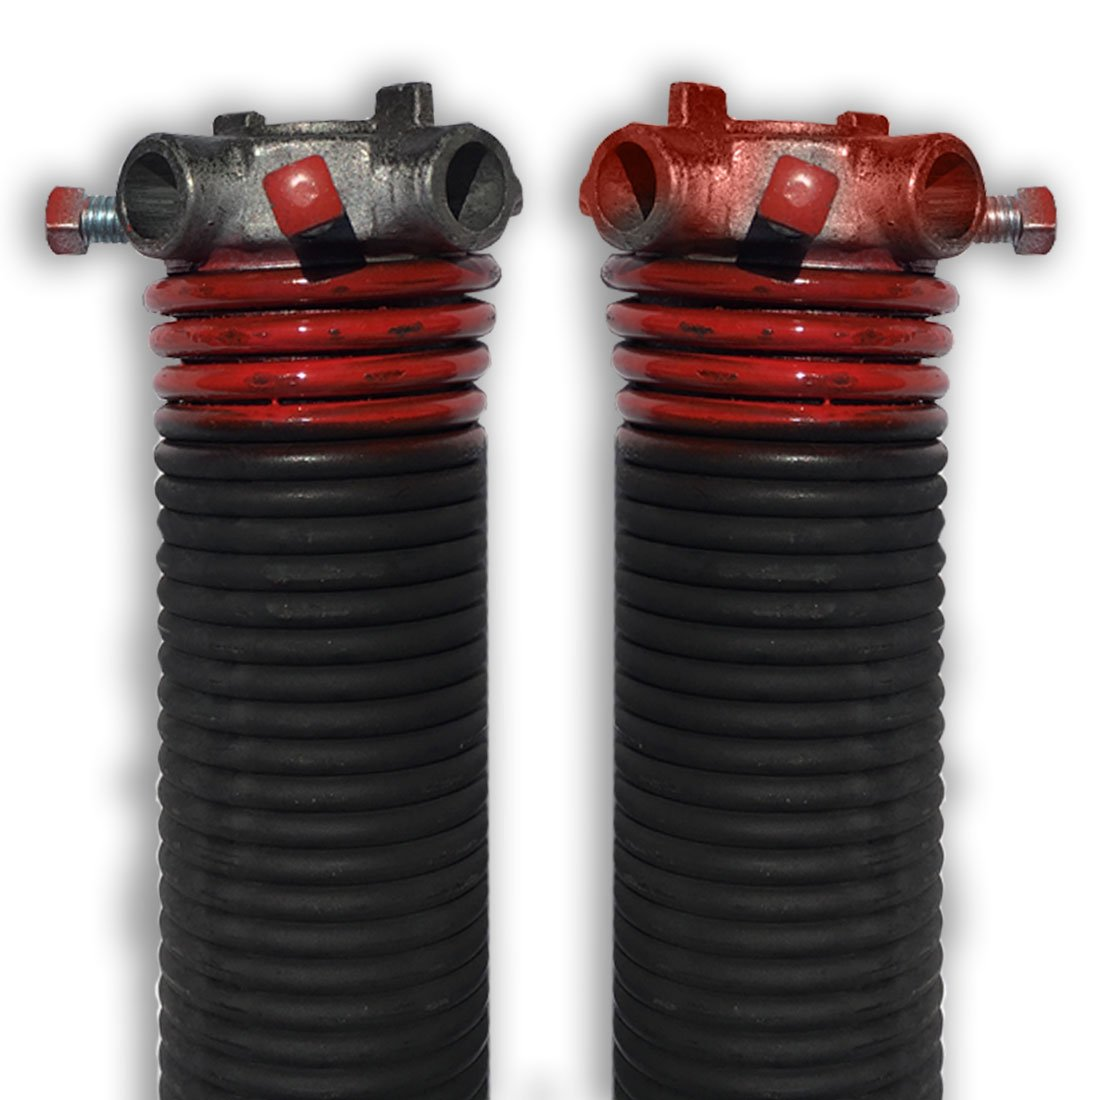 Spring ID 1-3//4; Spring Length 27 with Winding Bars Pair of .225 Garage Door Torsion Springs